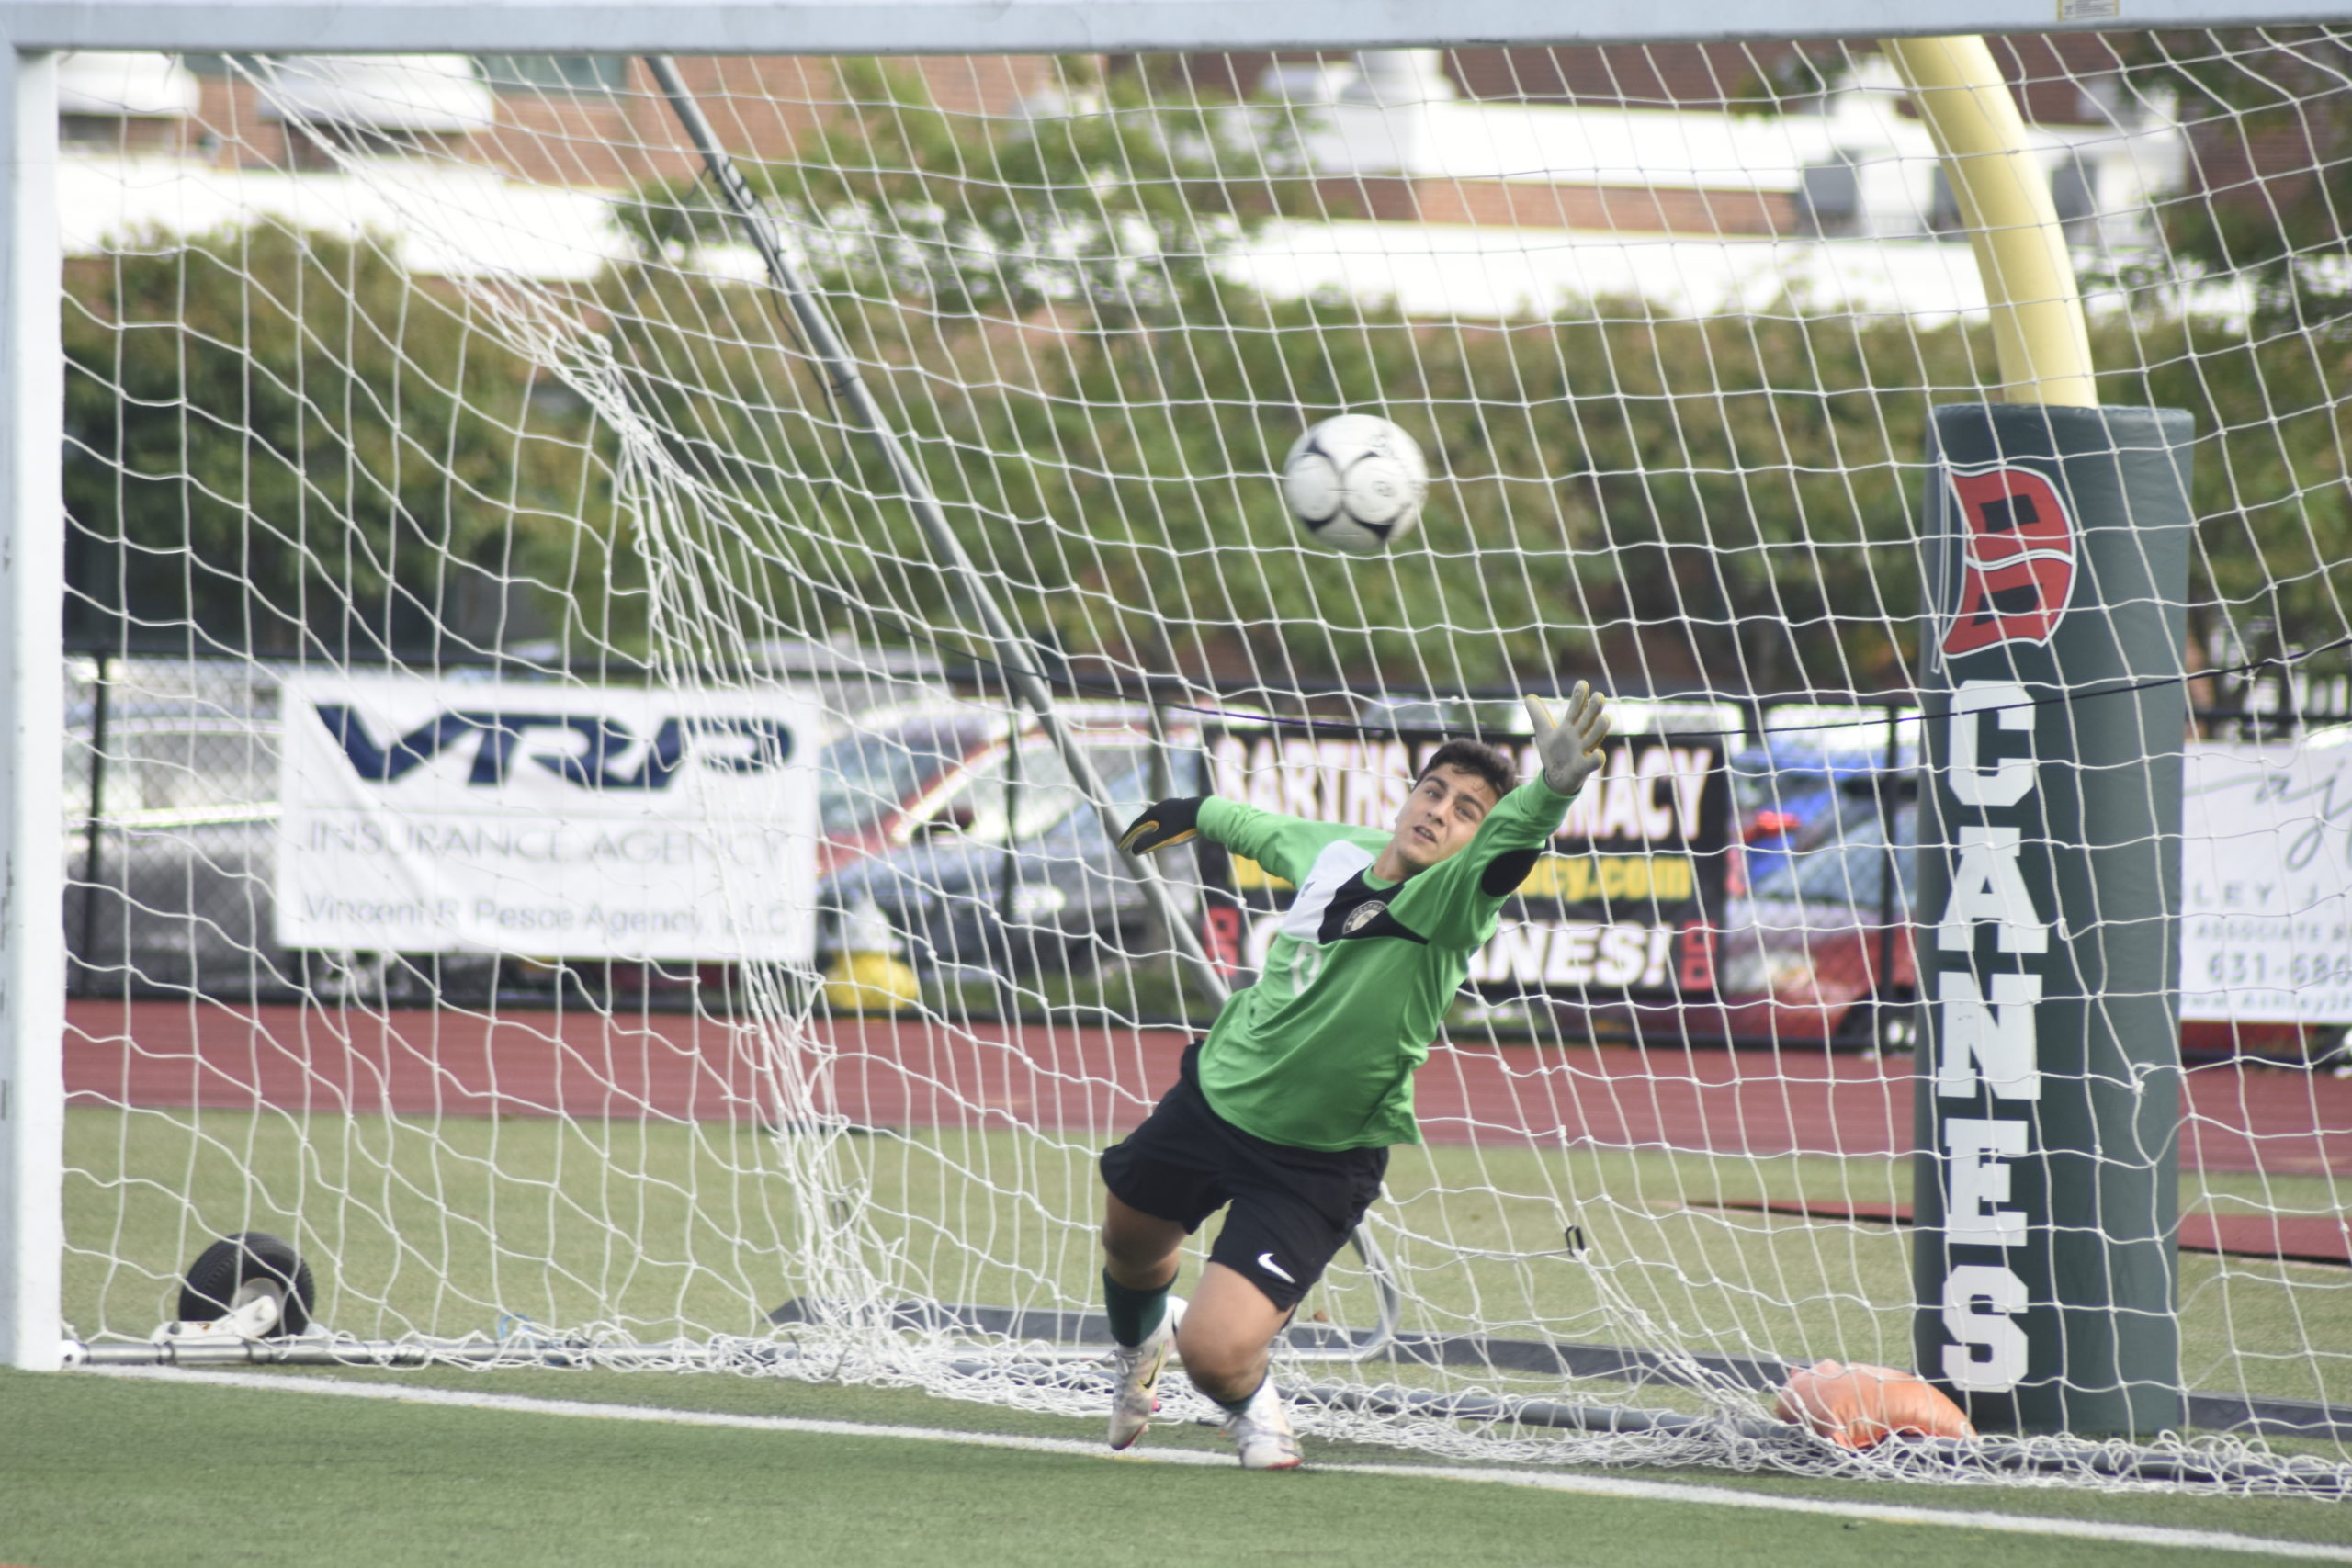 Westhampton Beach senior goalie Alessandro Volpe goes all out to try and make a save on a penalty kick but to no avail.